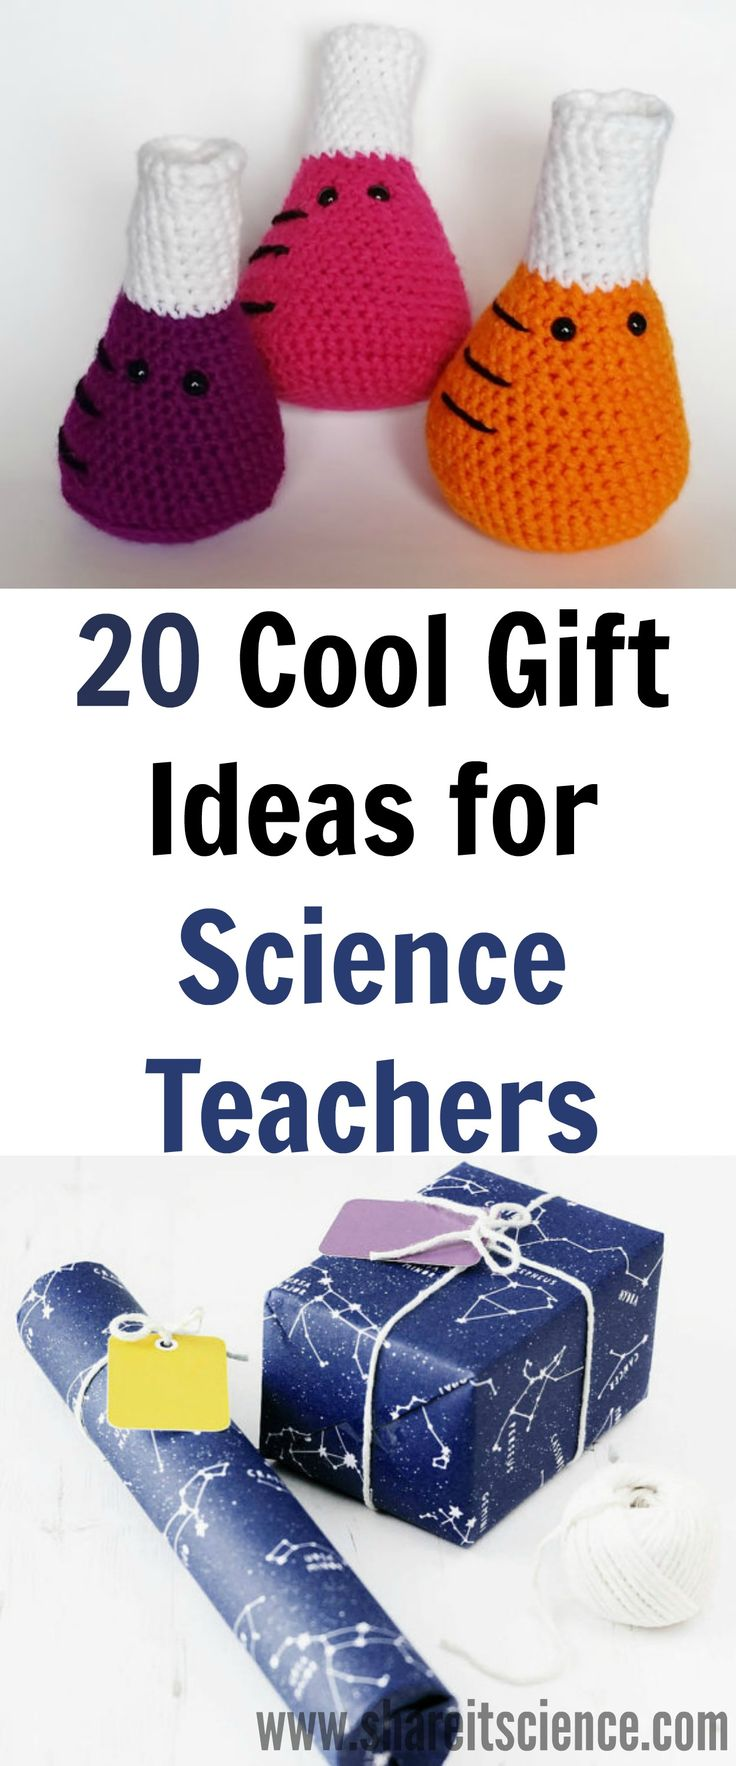 Looking for a unique science gift for a teacher or friend? Here are 20 awesome gifts from Etsy that your science loving teacher or student will love!